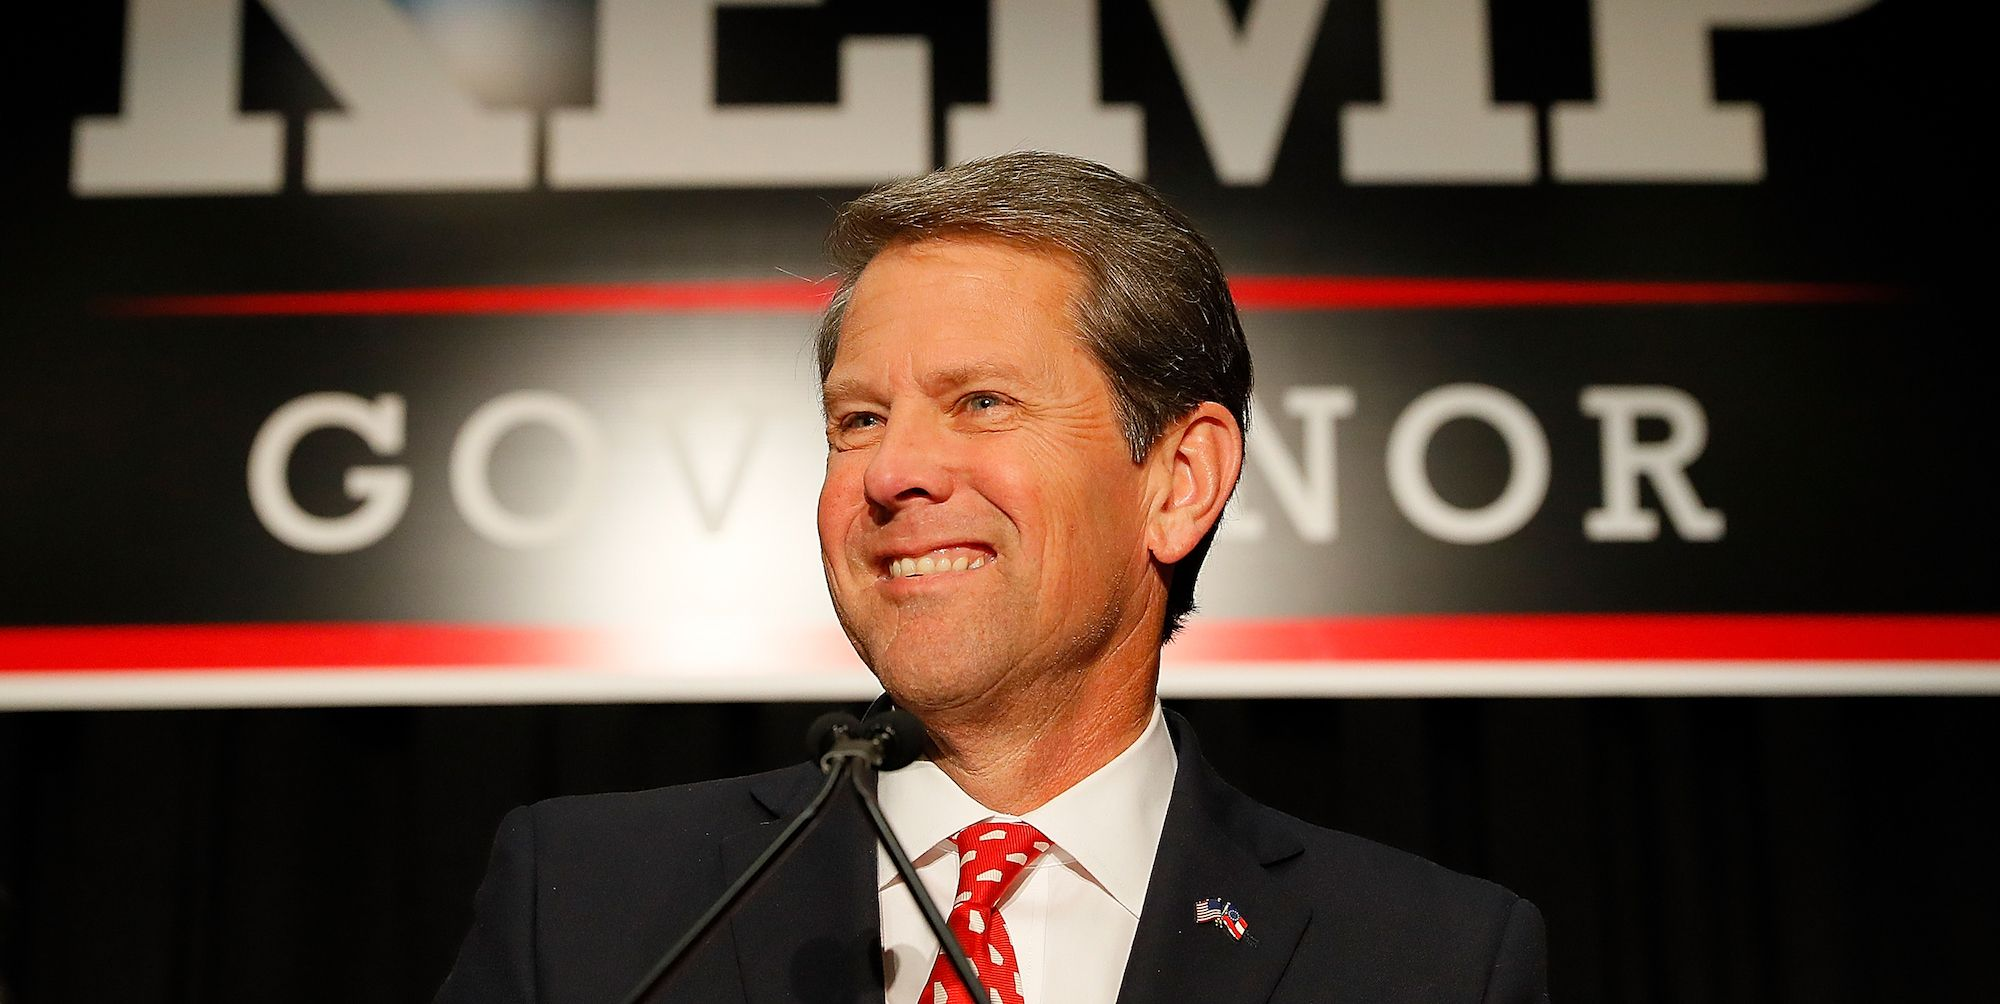 Republican Candidate For Governor Brian Kemp Attends Election Night Event In Athens, Georgia